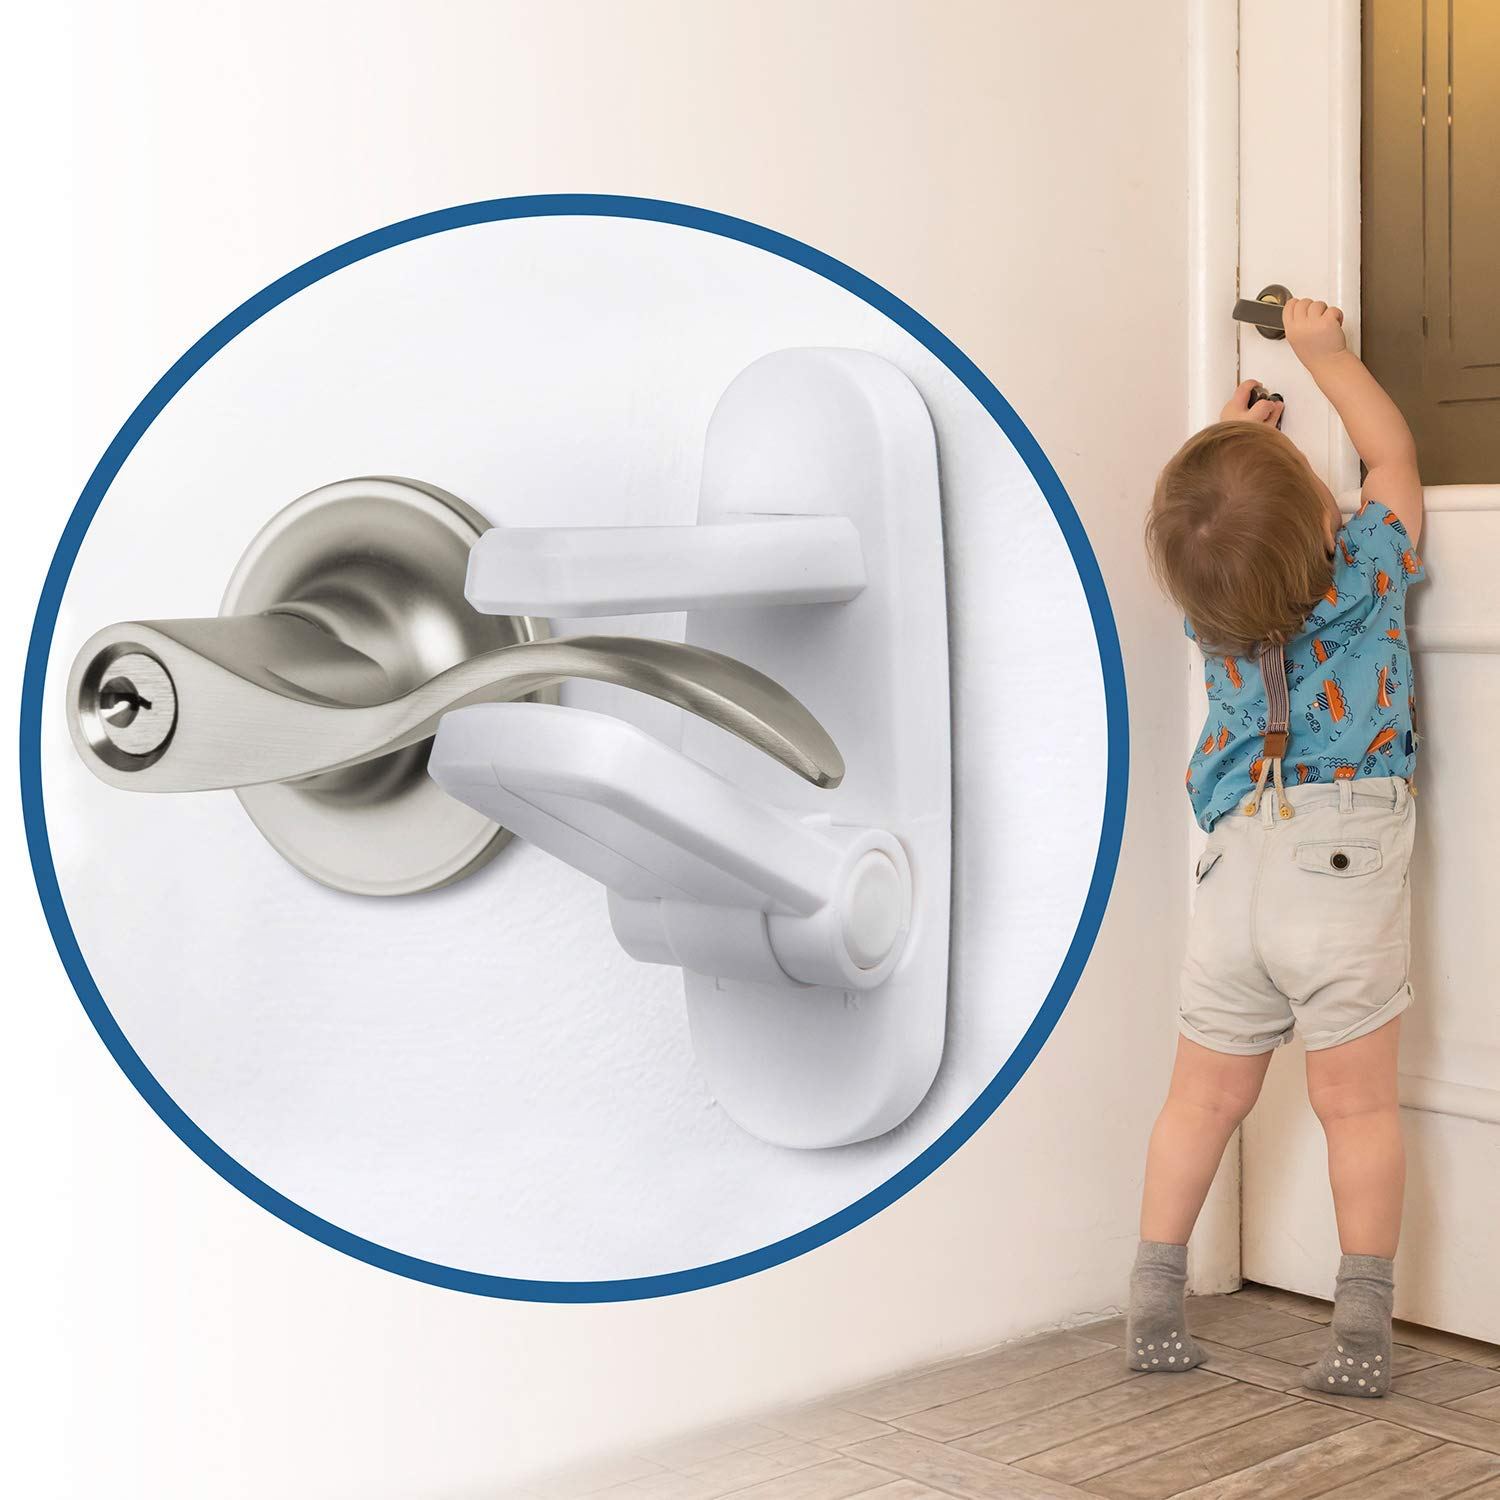 One Hand Opertaion Adhesive Baby Proofing Door Handle Safety Locks for Kids 1 Pack Child Proof Door Lever Lock Prevents Toddlers from Opening Doors